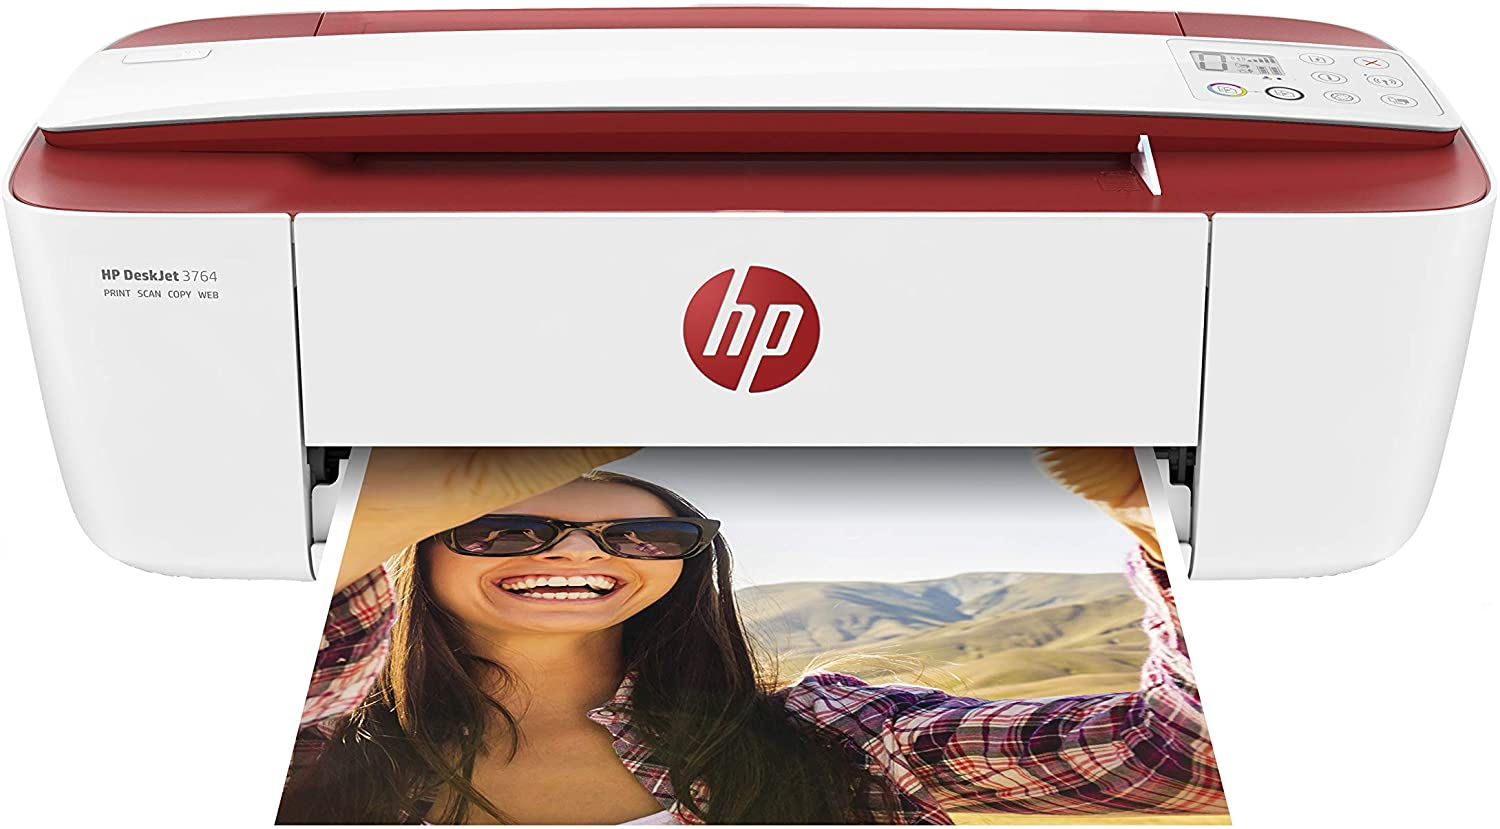 HP DeskJet 3764 All-in-One Printer, Instant Ink with 2 Months Trial uk reviews